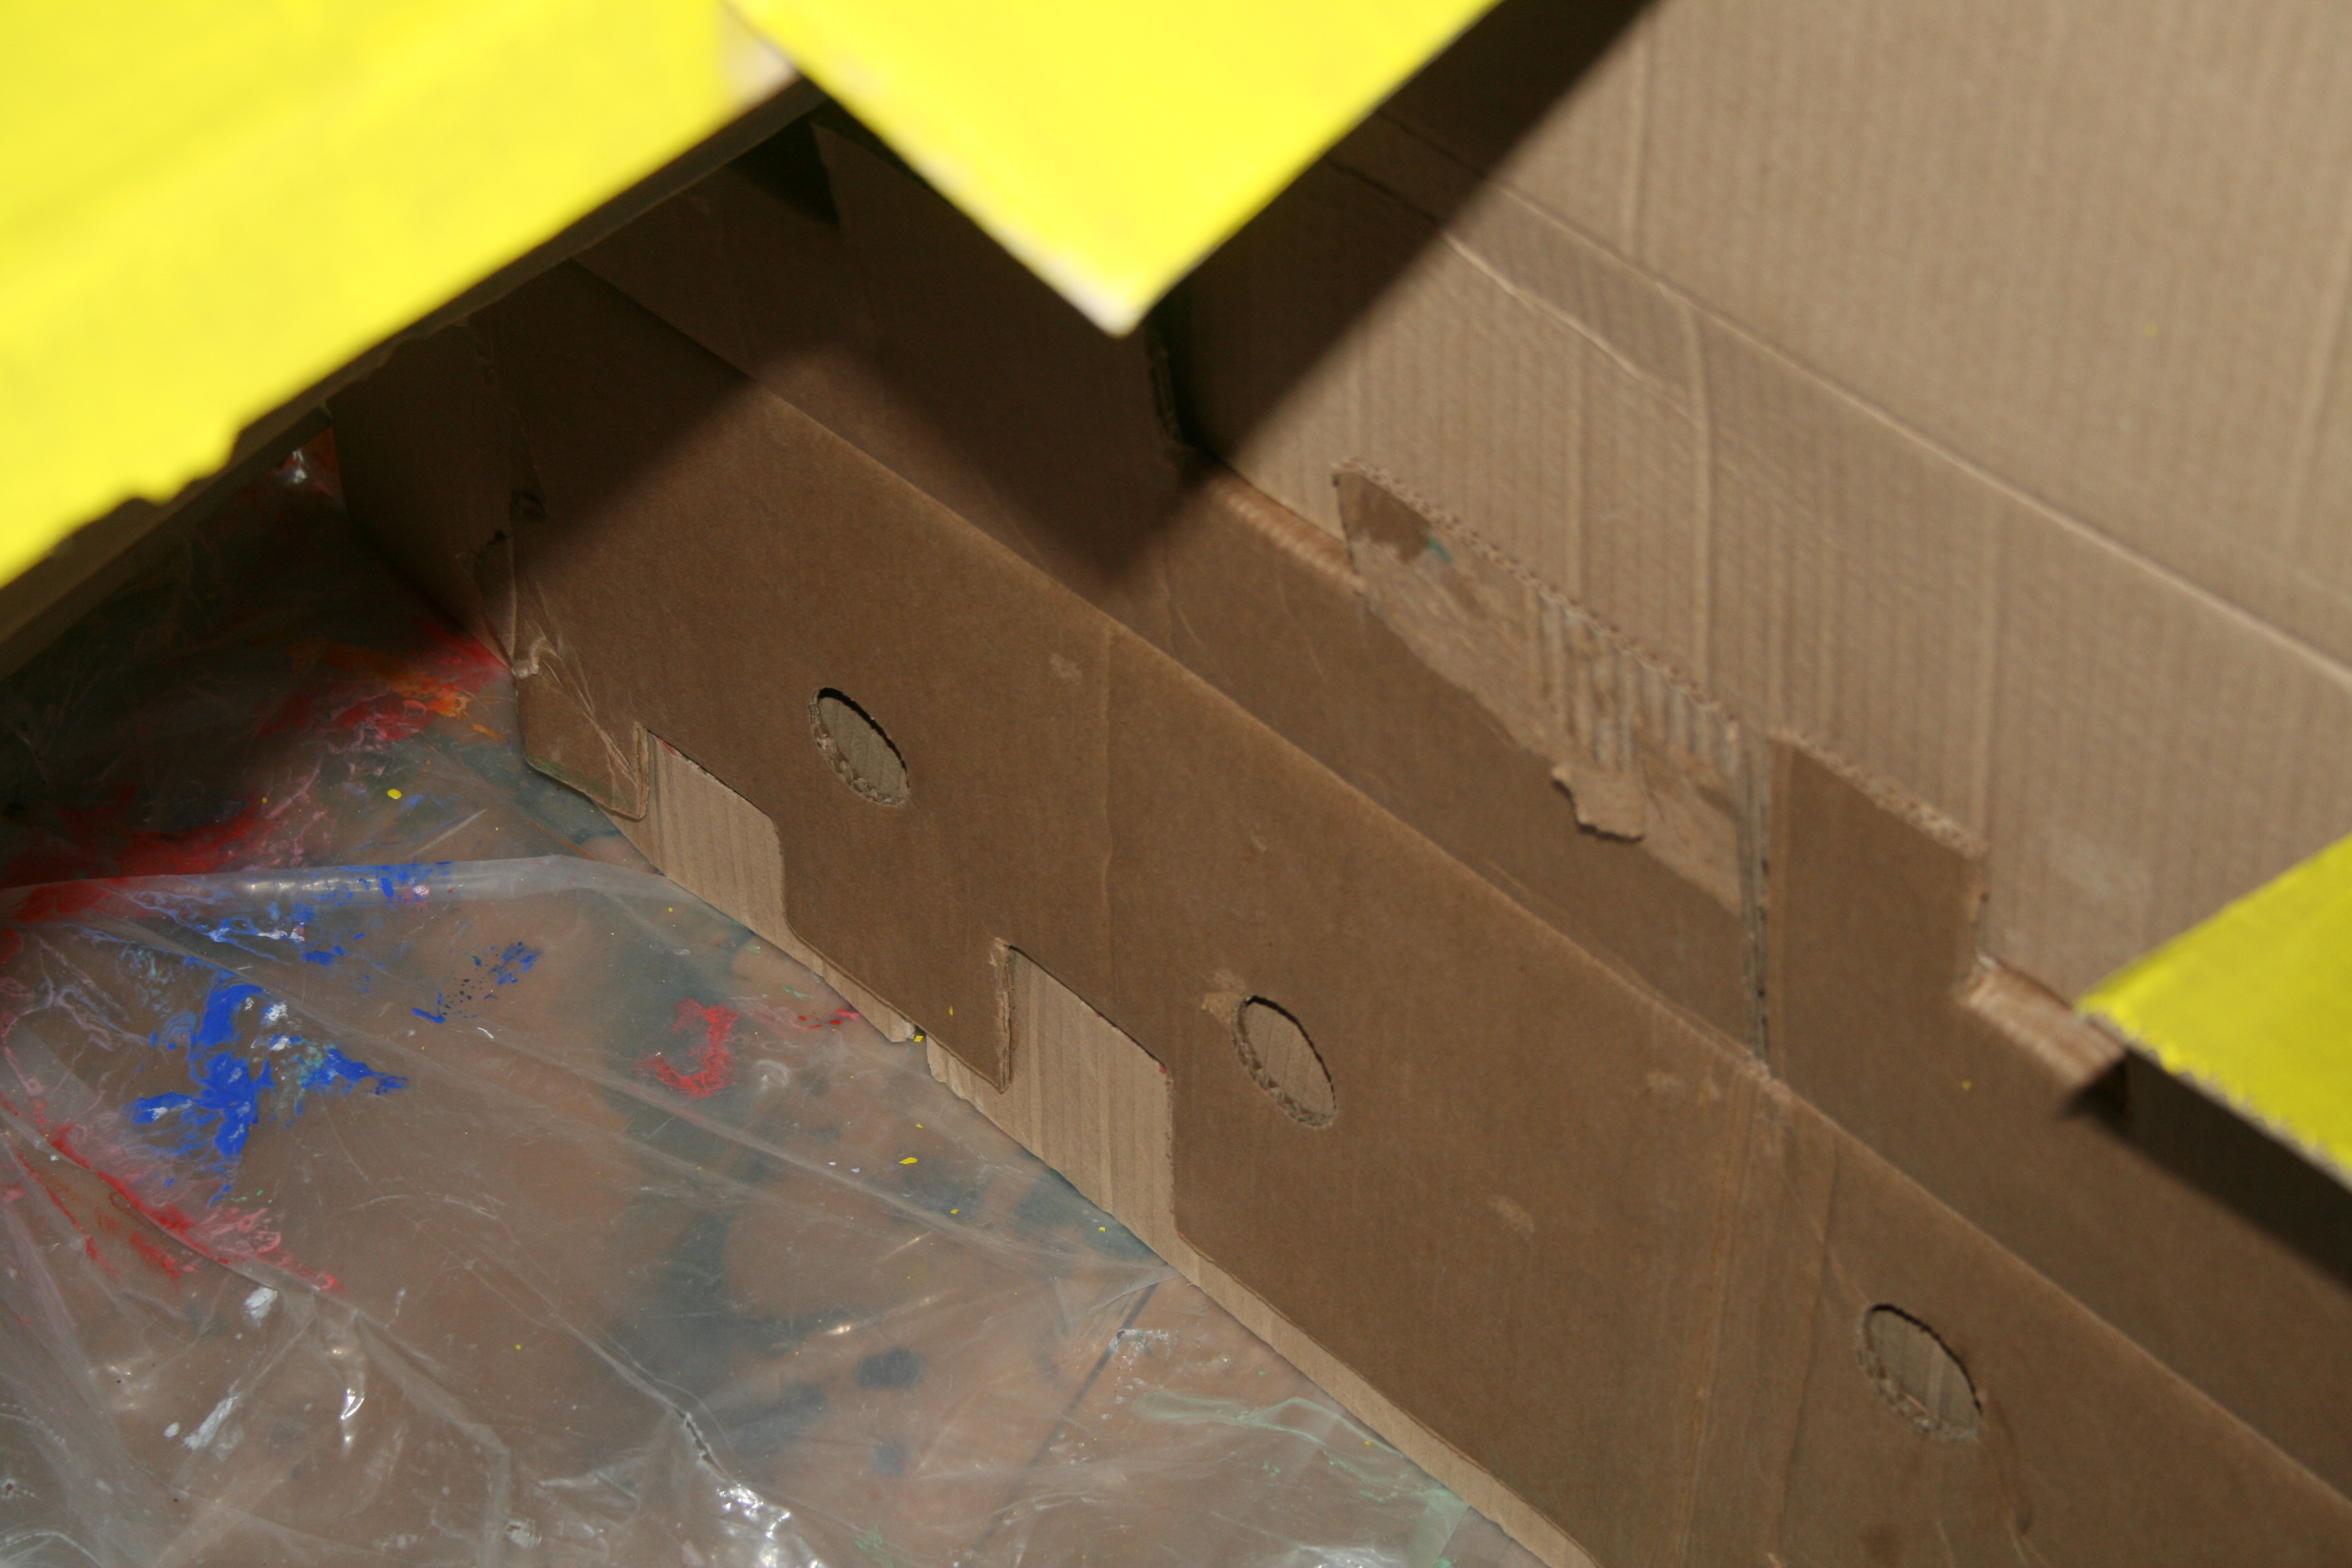 A look at how the car stays together- through joints that go through another layer of cardboard.